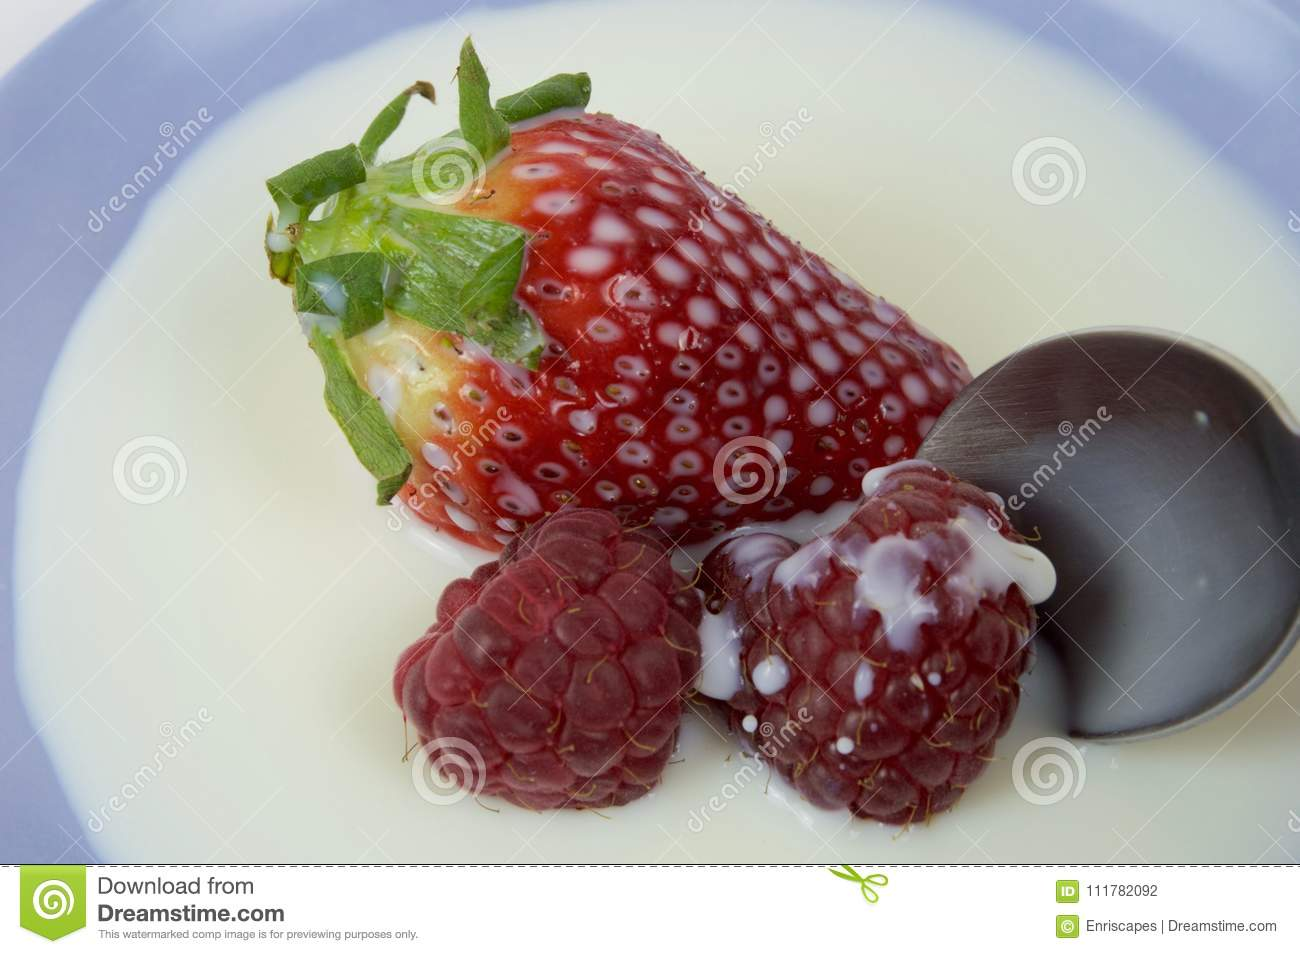 Strawberry and raspberry bathed in milk